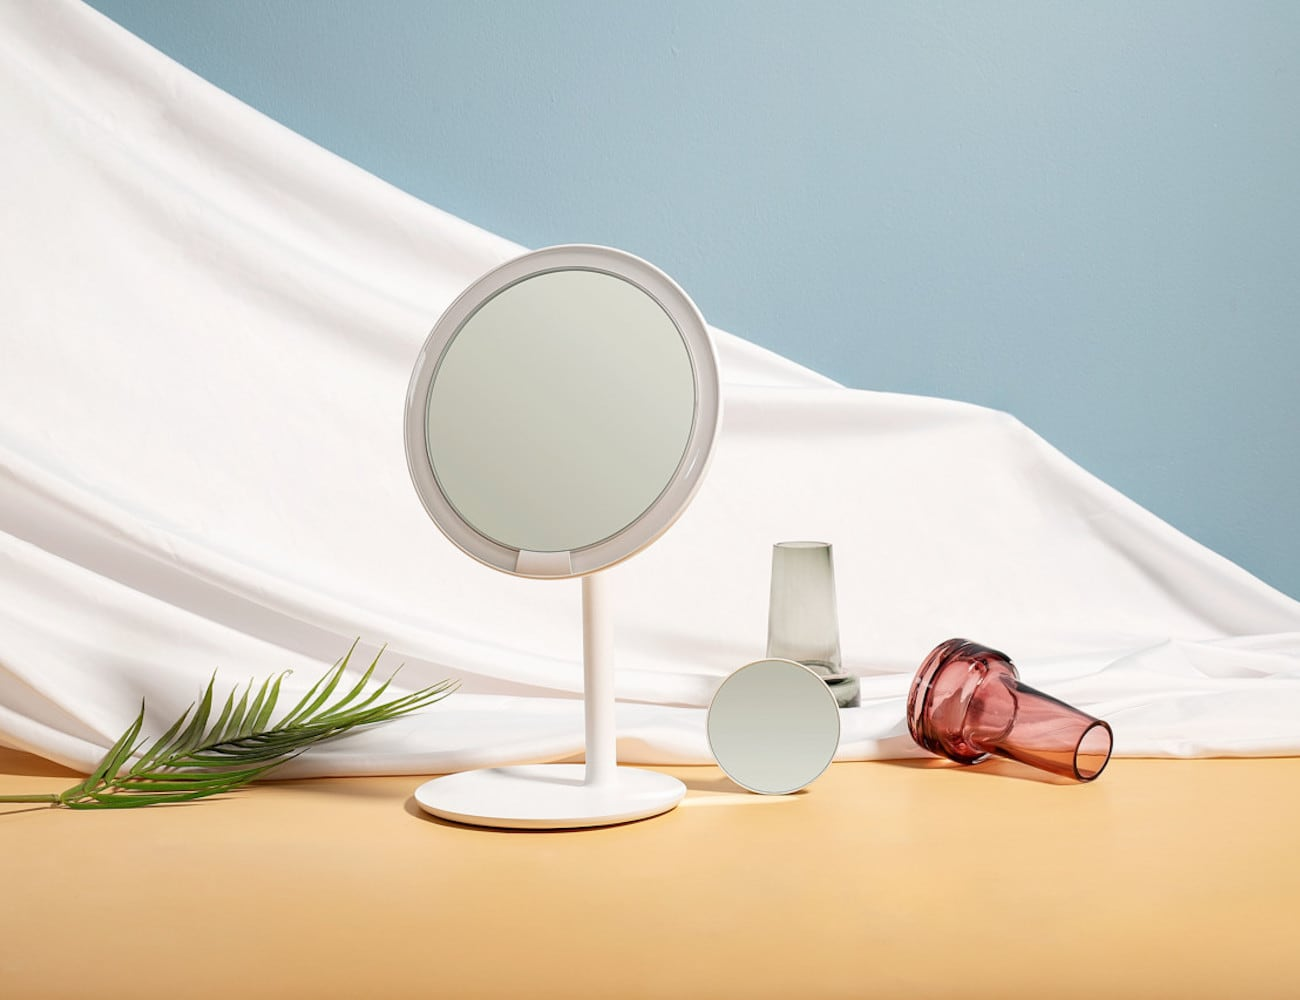 Amiro HD Daylight Makeup Mirror helps you apply makeup flawlessly